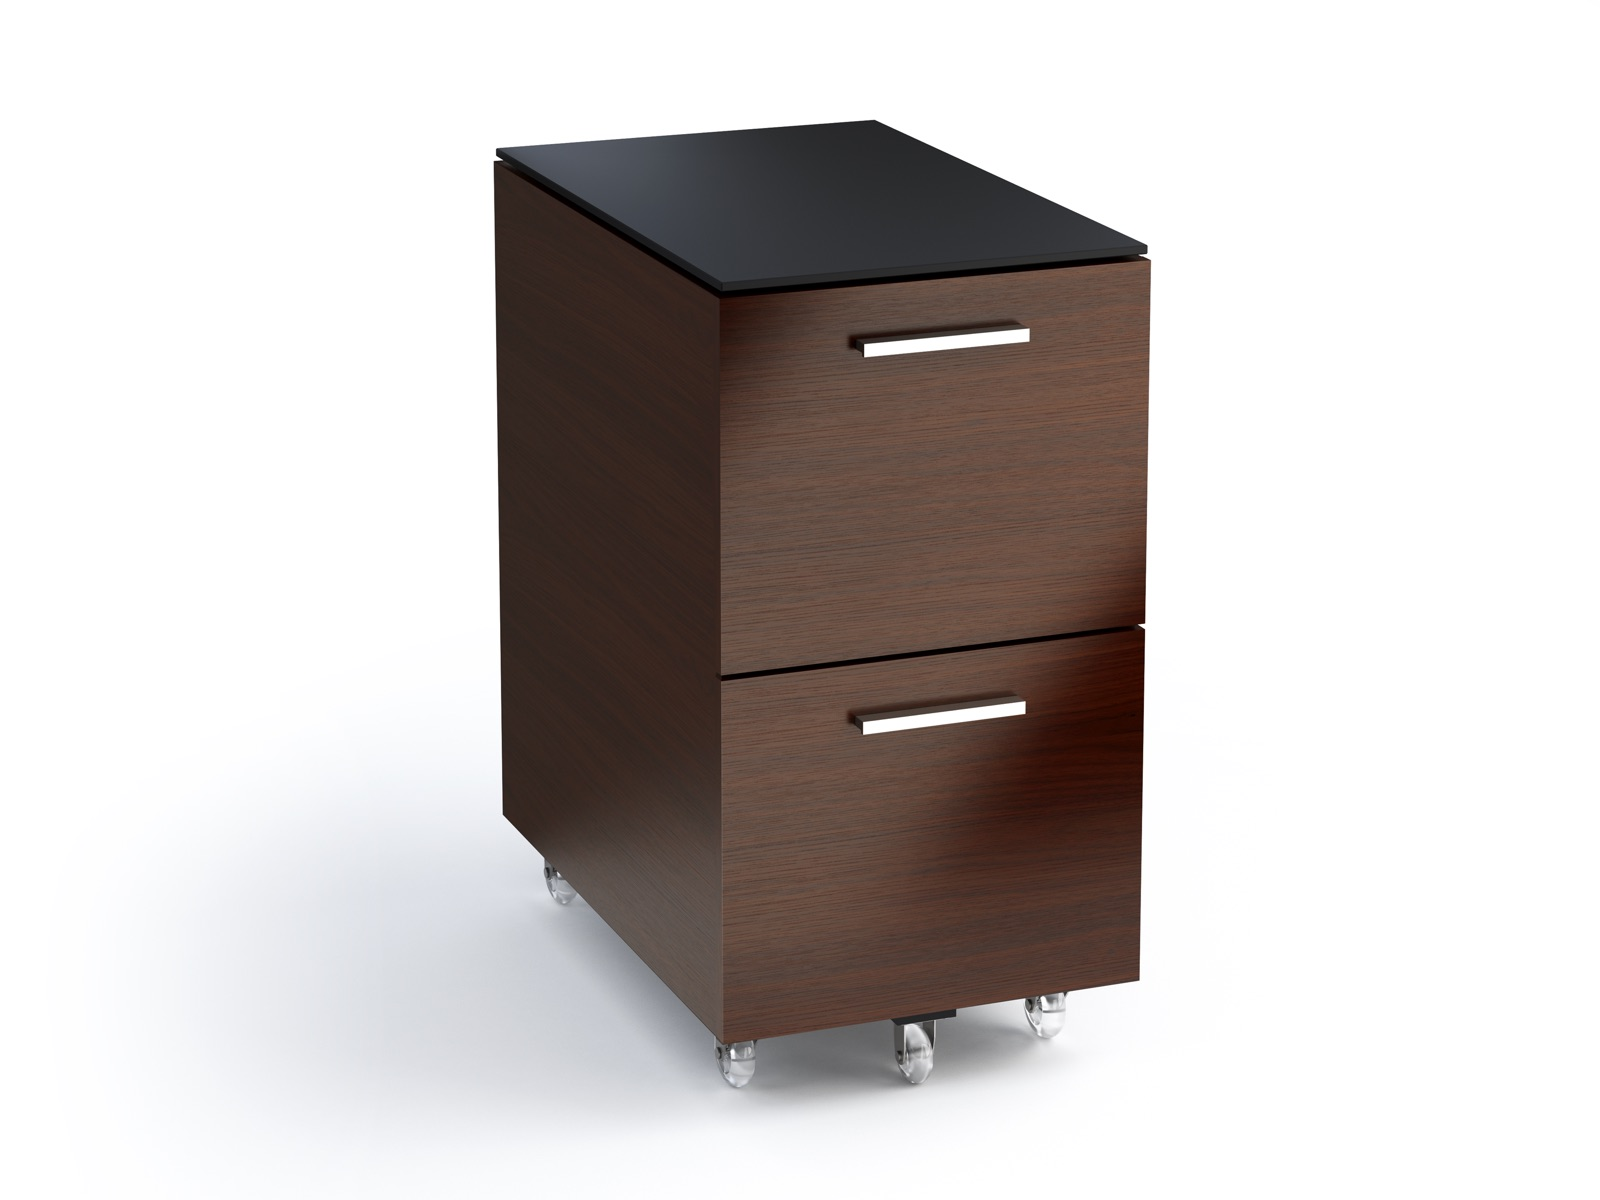 Sequel 6005 File Cabinet Ormes Furniture